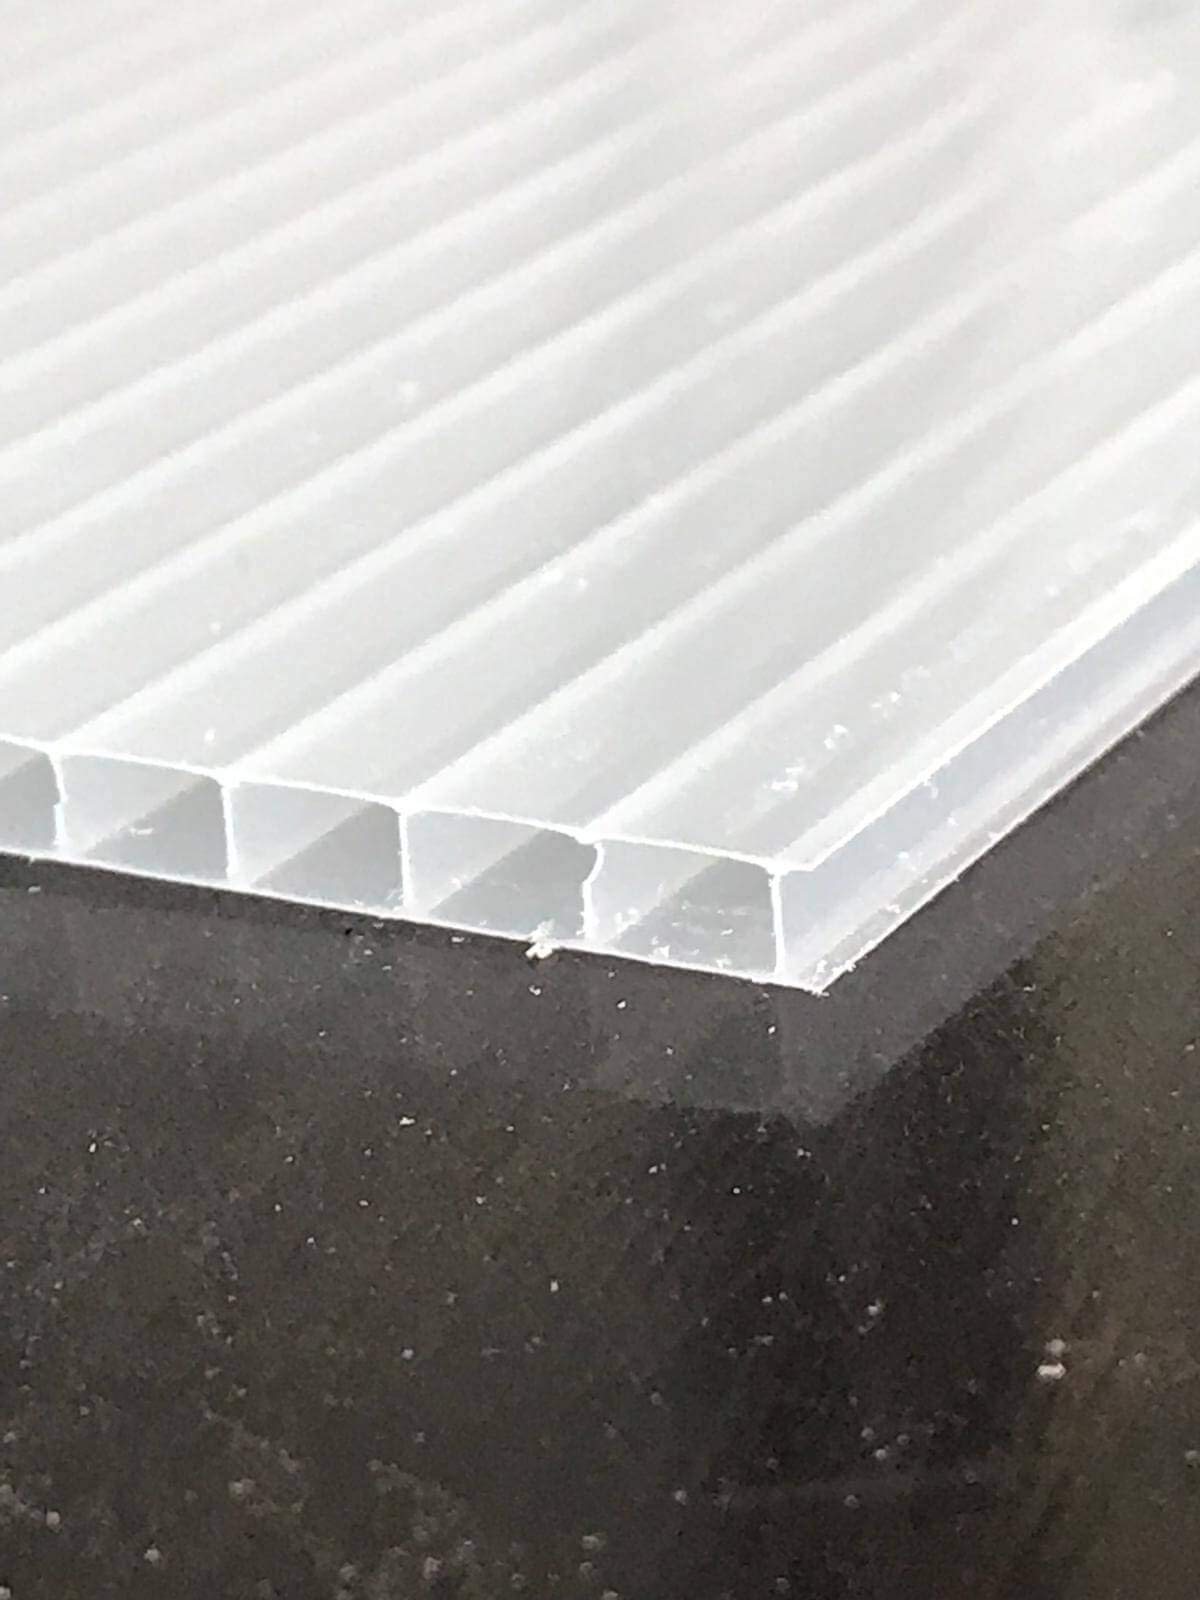 Width x Length 1.5 x 3m Clear 16mm Multiwall Polycarbonate Sheets Poly Plastic Roof Panel for Lean-to Canopy Conservatory